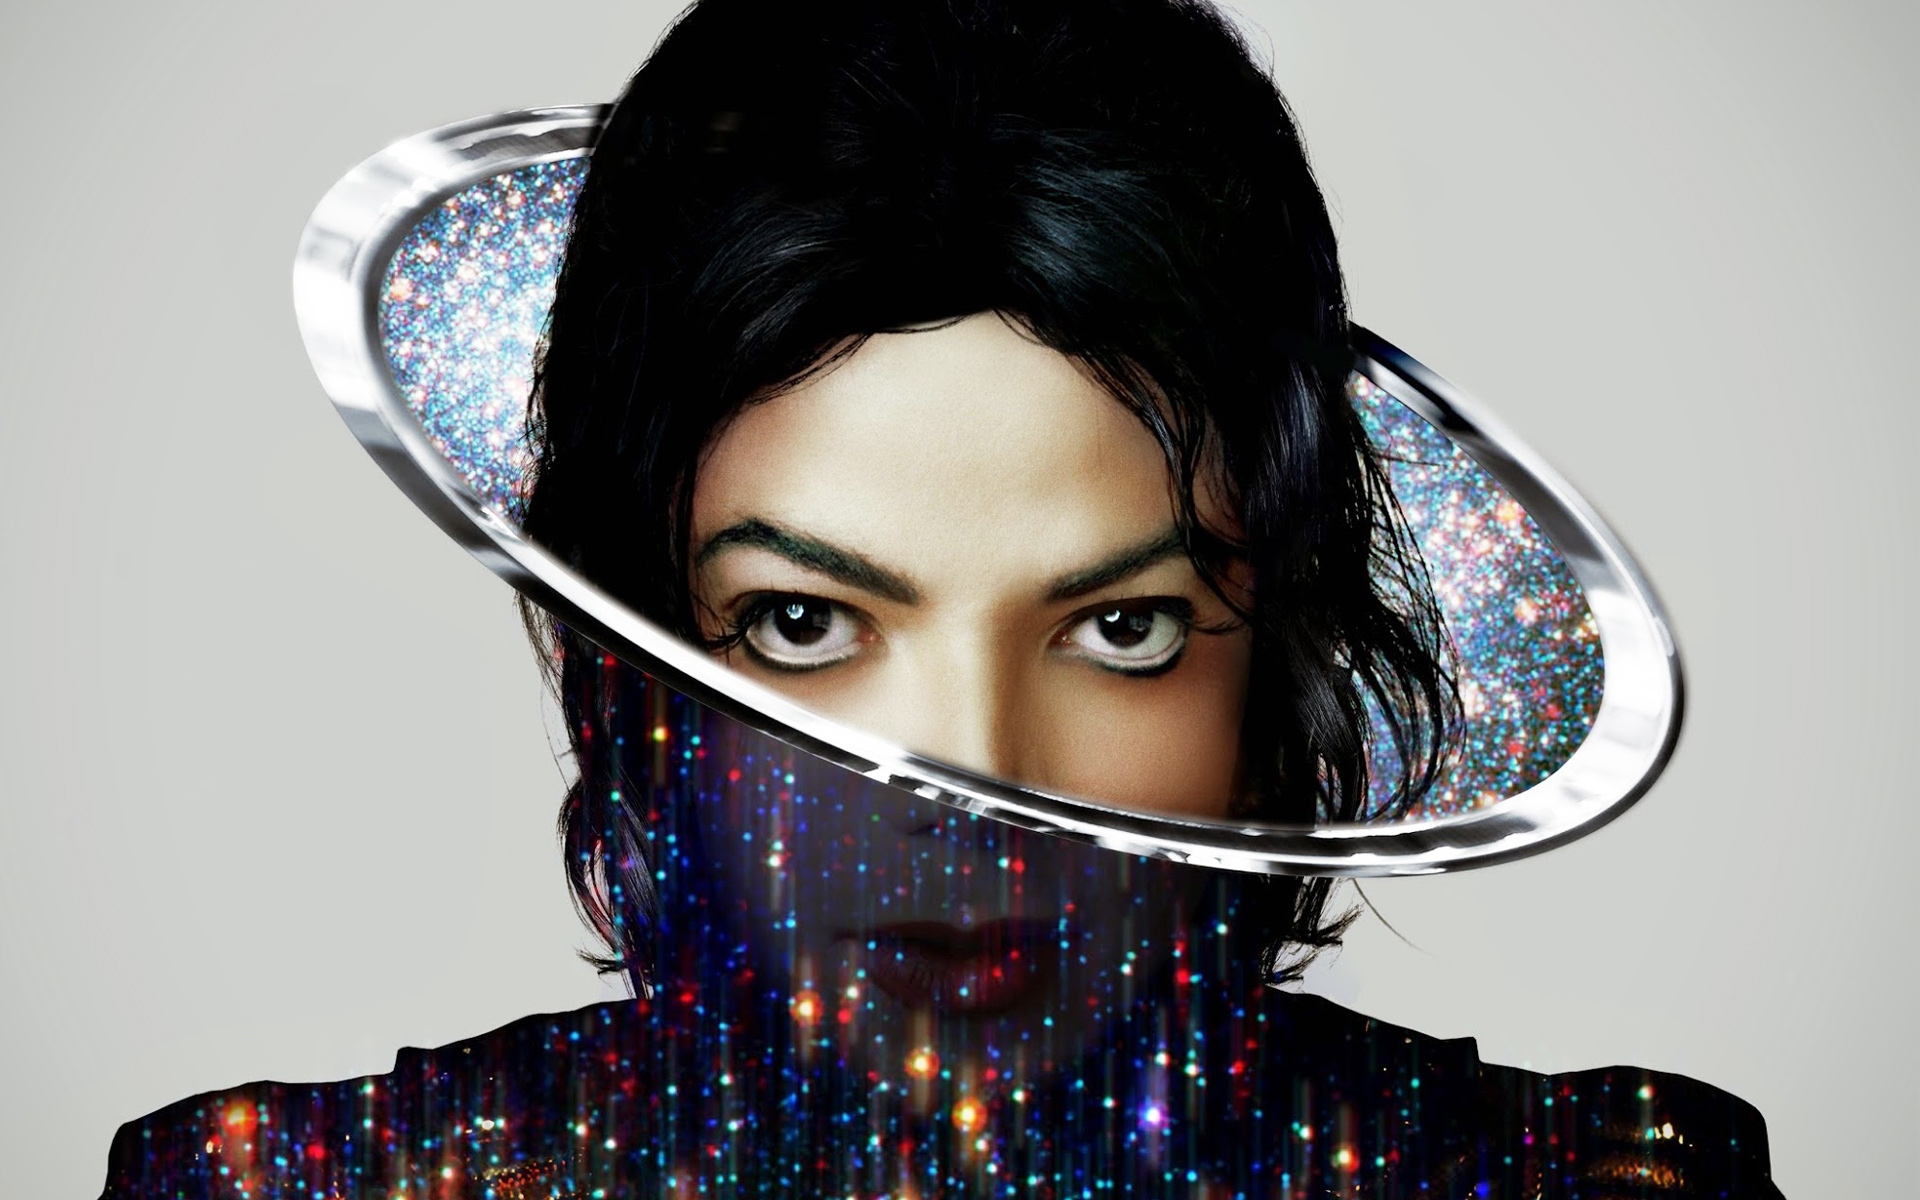 Michael jackson xscape album free download archives — gizmo bolt.